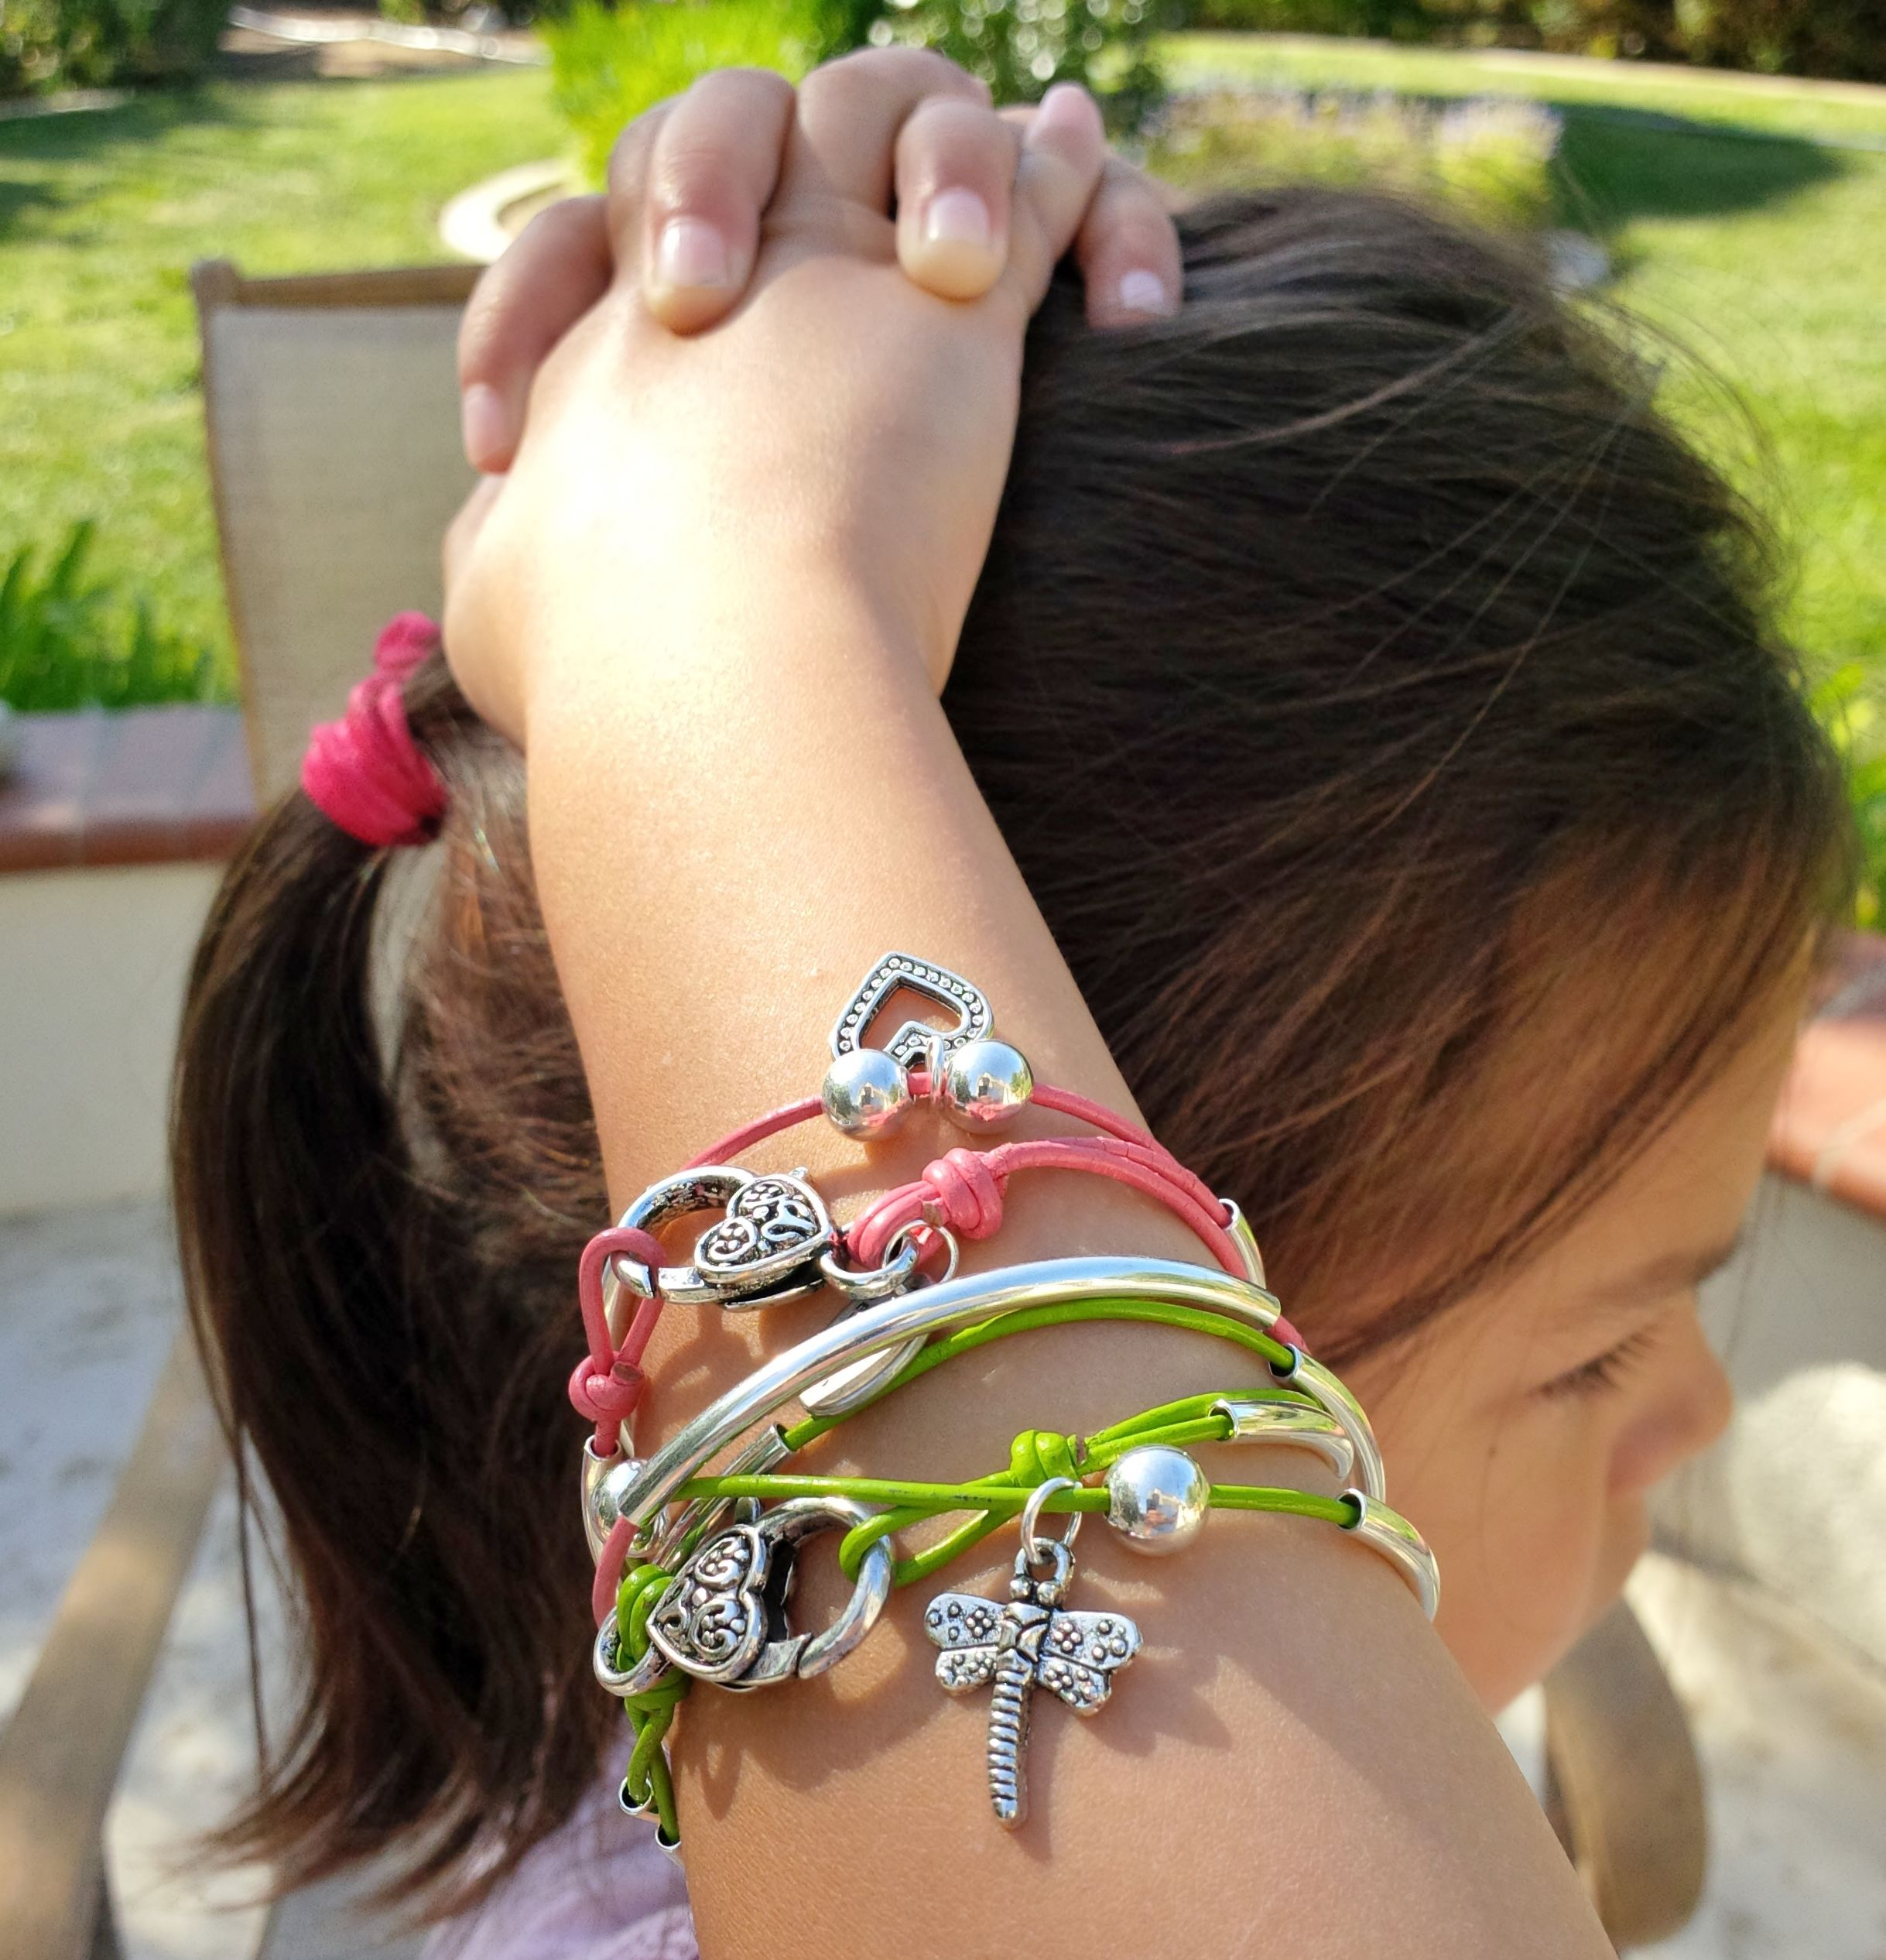 dangle cuban miami bangle and bracelets stacked with bangles stack stackable traditional charms santayana crest charm jewelry